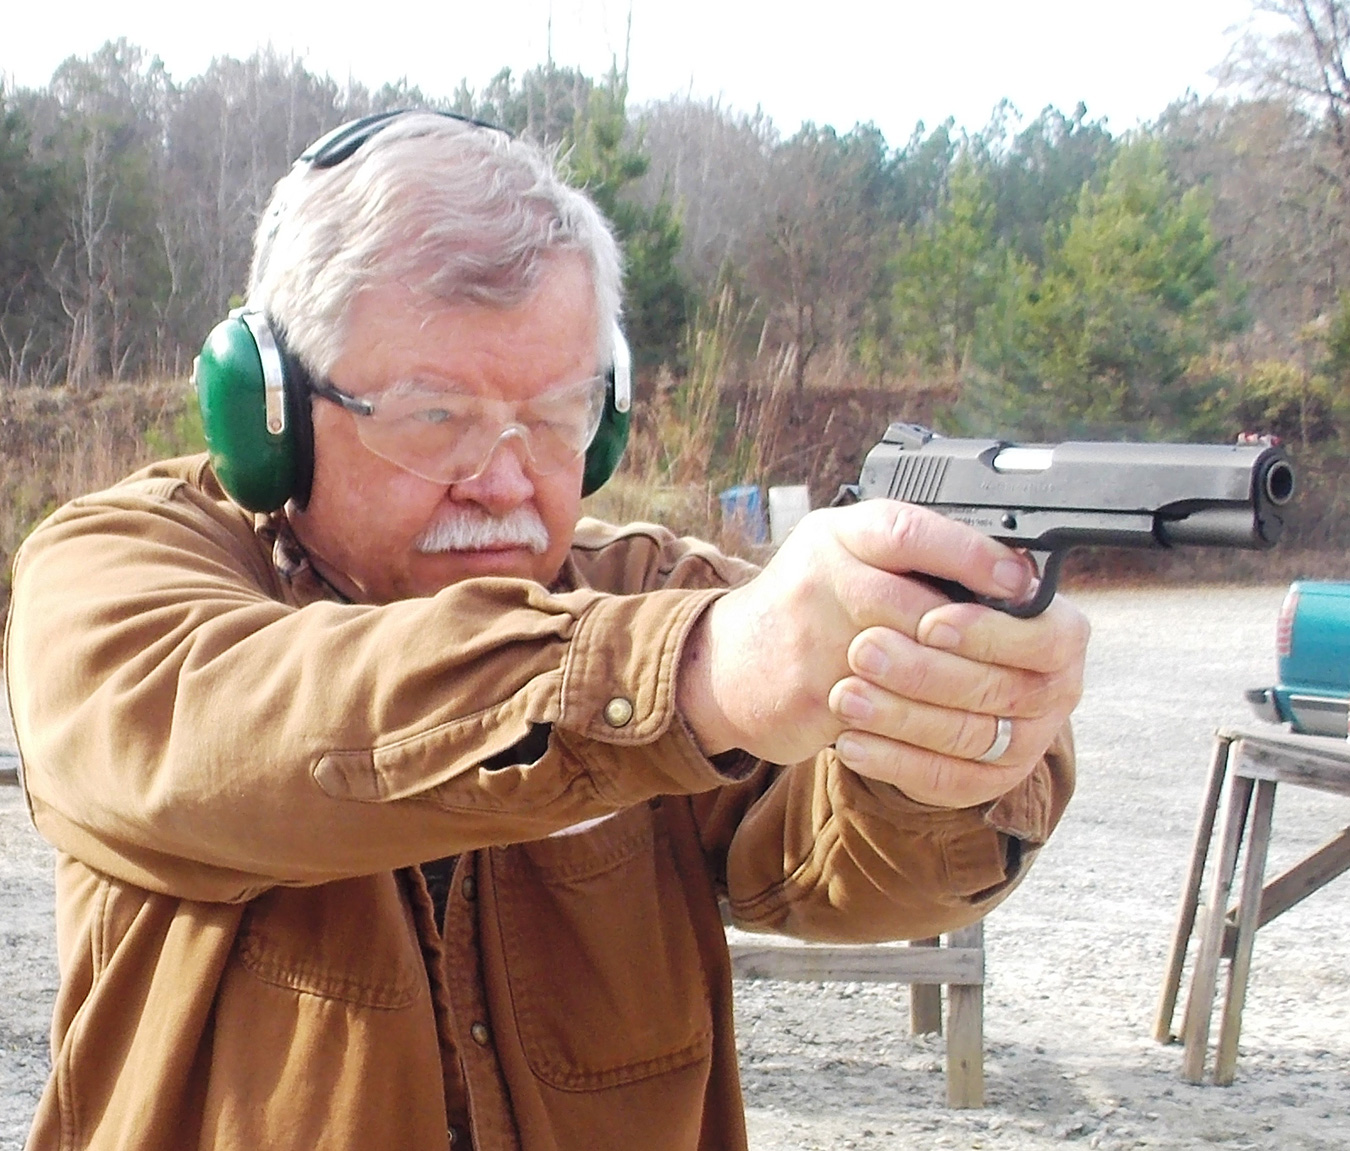 Bob Campbell shooting the Colt Competition 1911 pistol